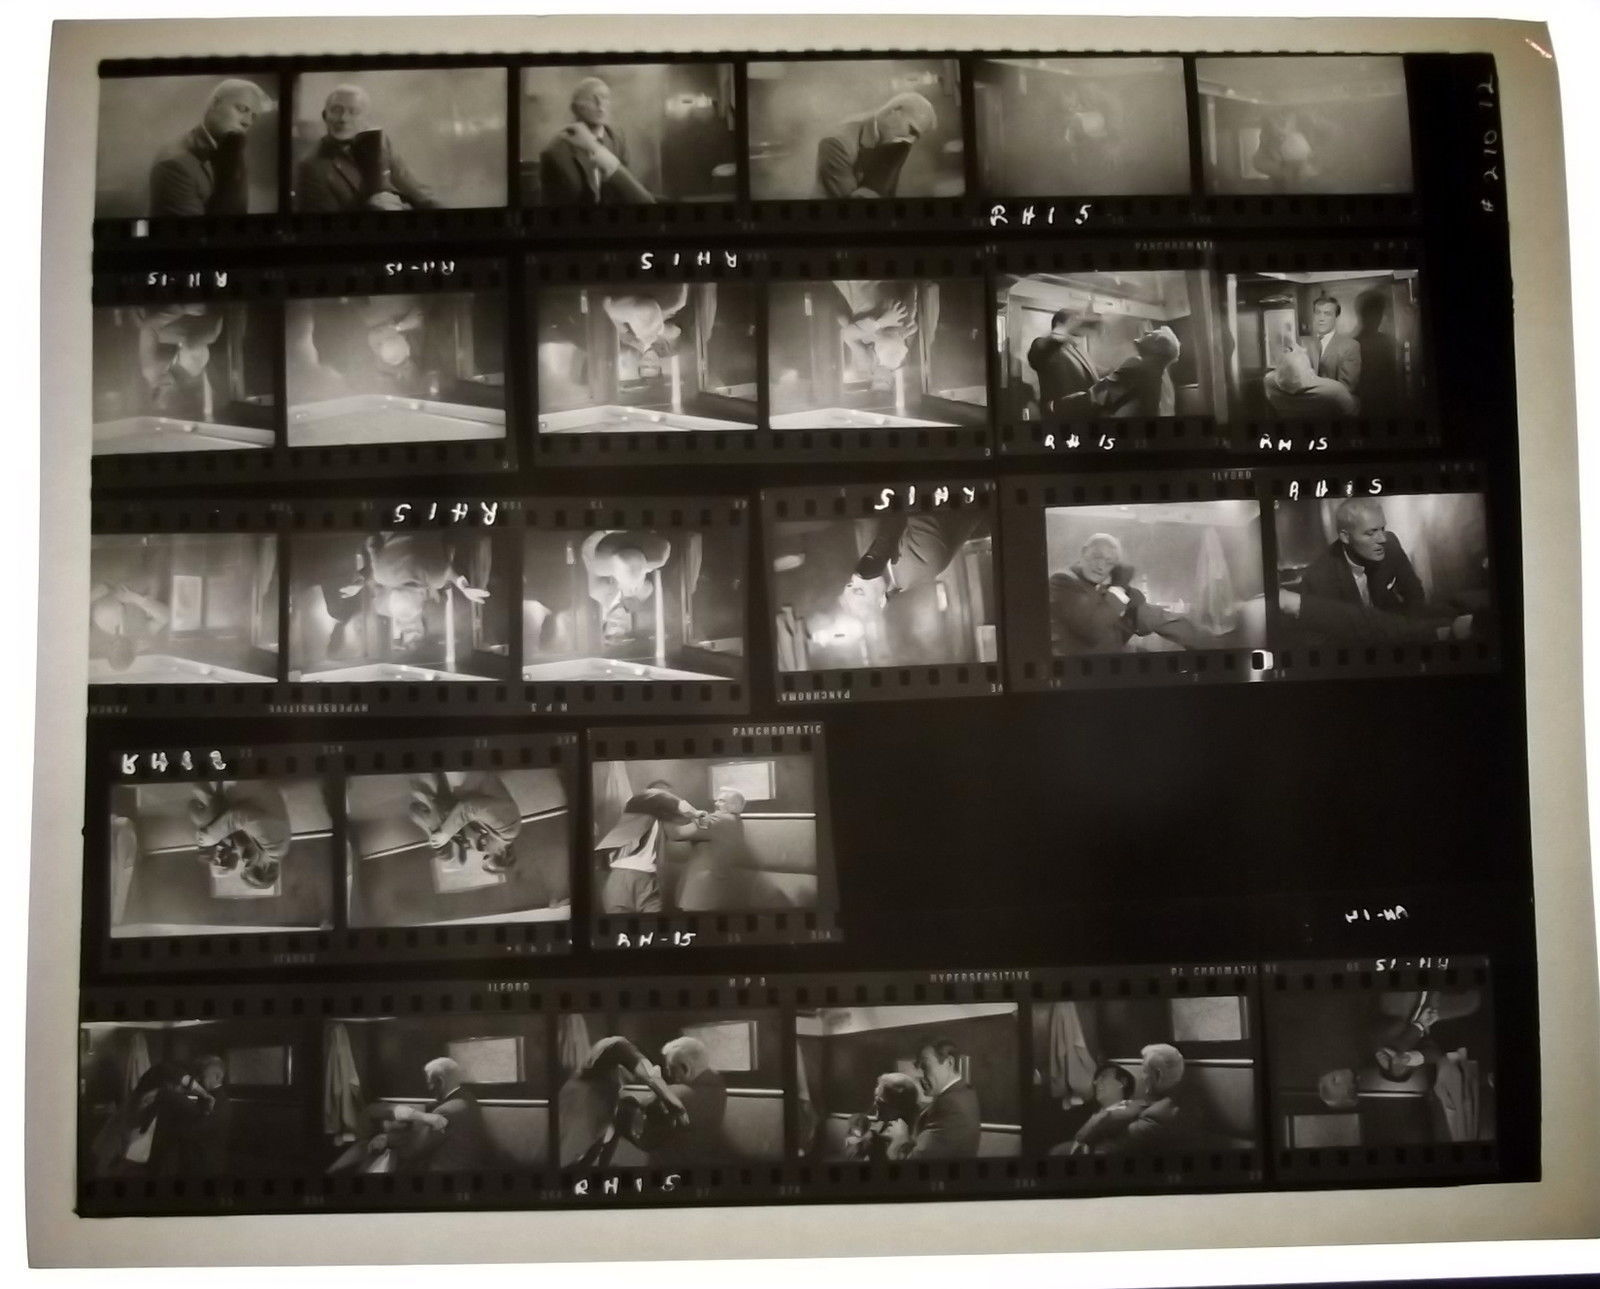 SEAN CONNERY BOND 007 (FROM RUSSIA WITH LOVE) ORIG,1963 CONTACT SHEET PHOTO # 1